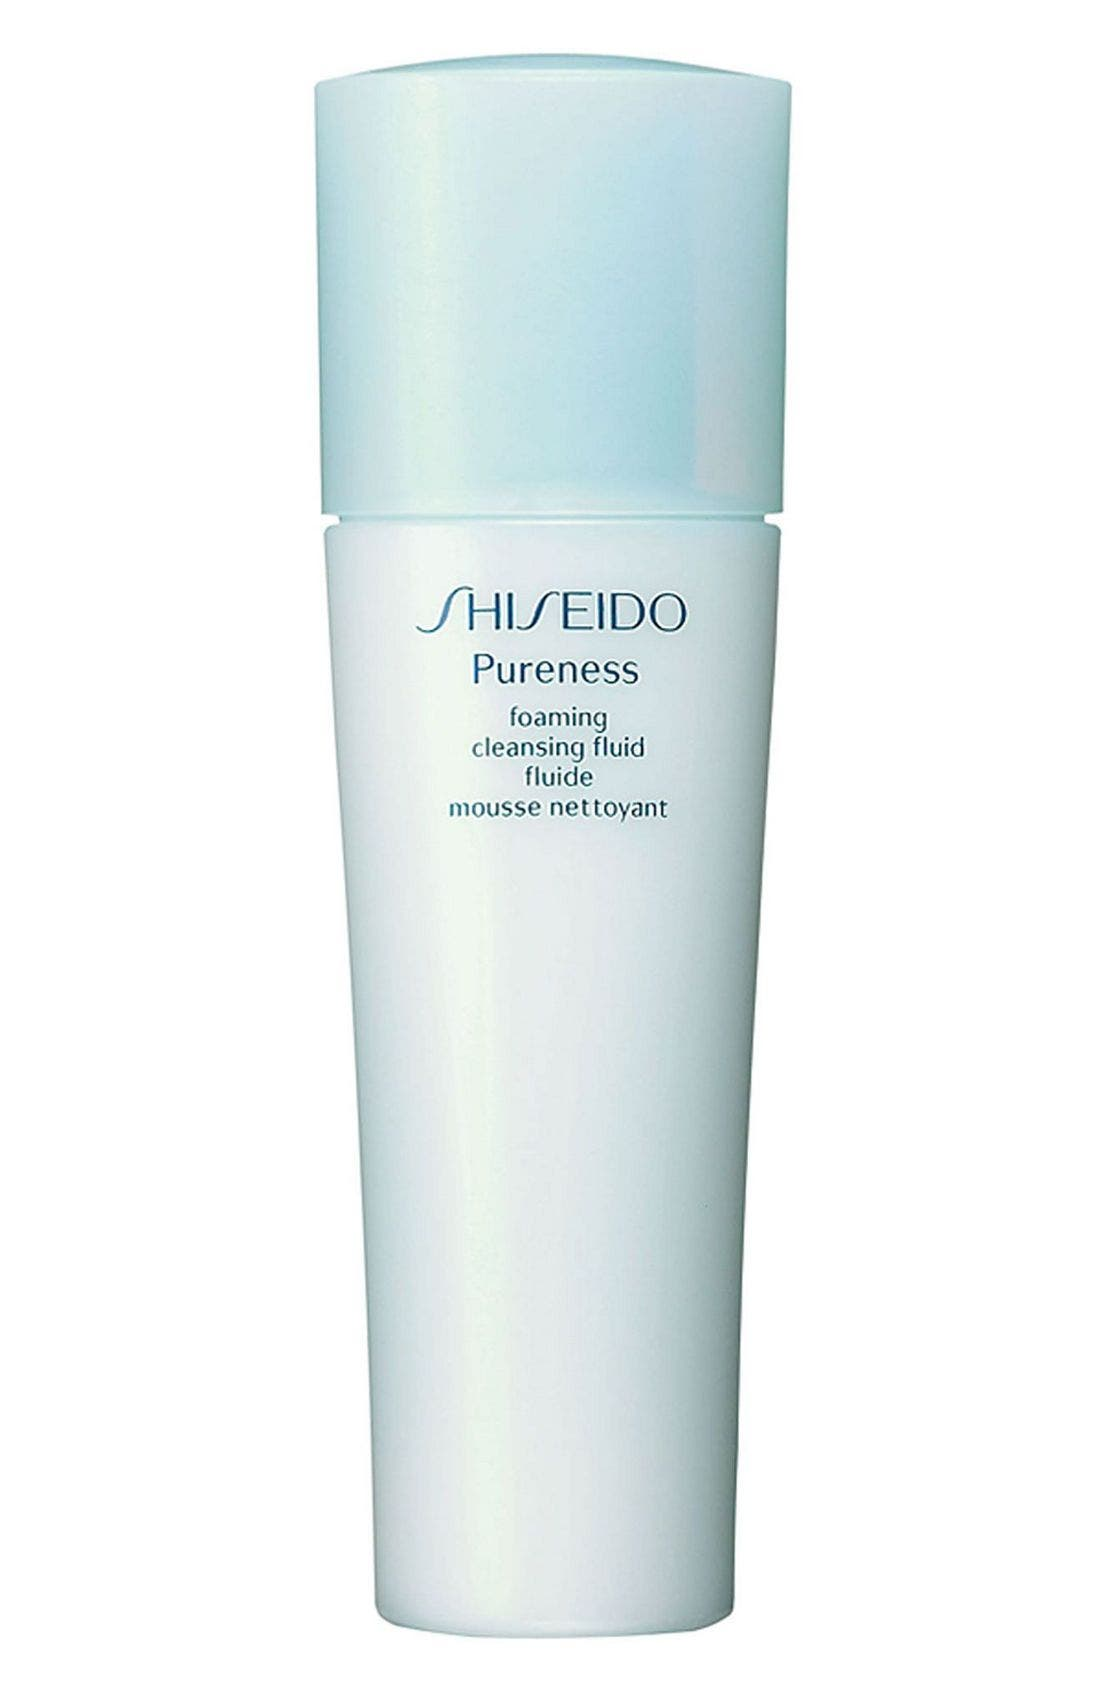 Shiseido 'Pureness' Foaming Cleansing Fluid